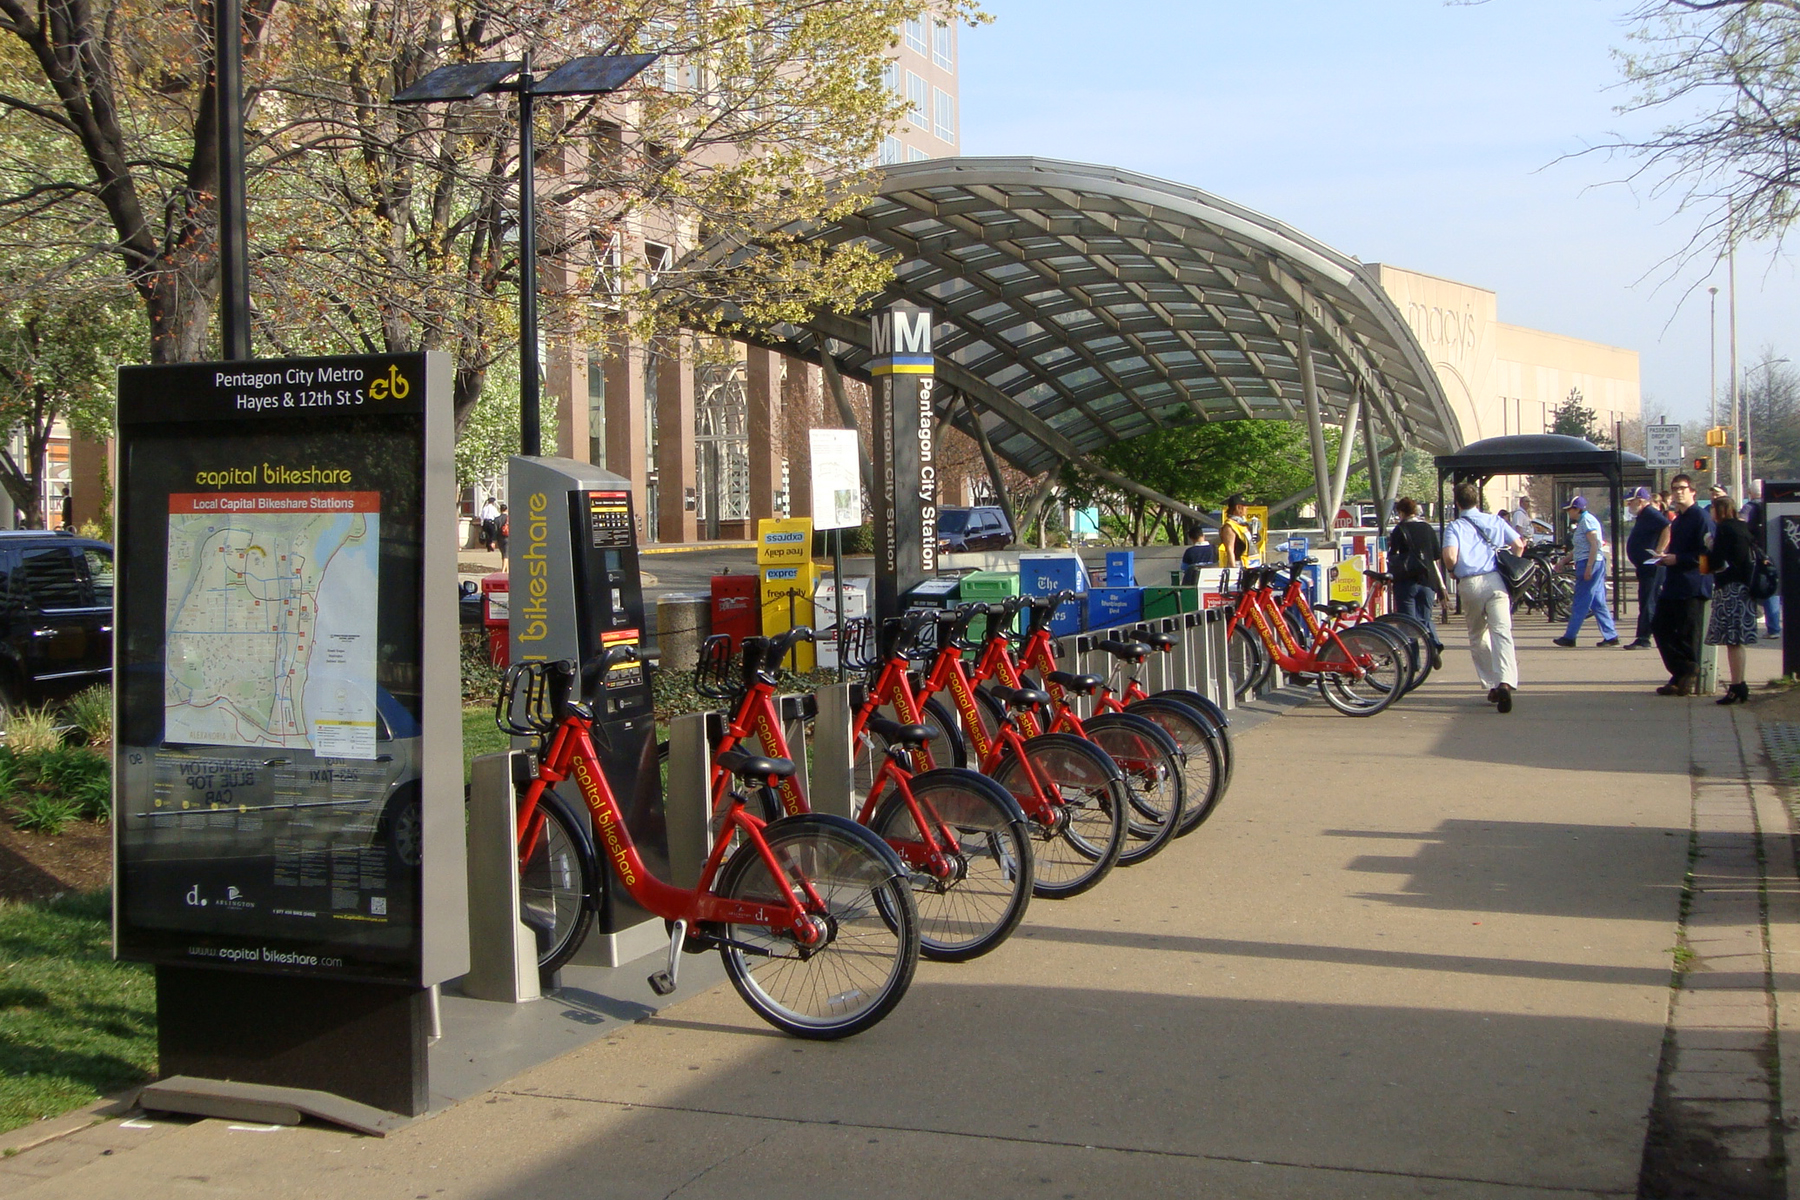 Bikeshare_Pentagon_City-mariordo59_flickr